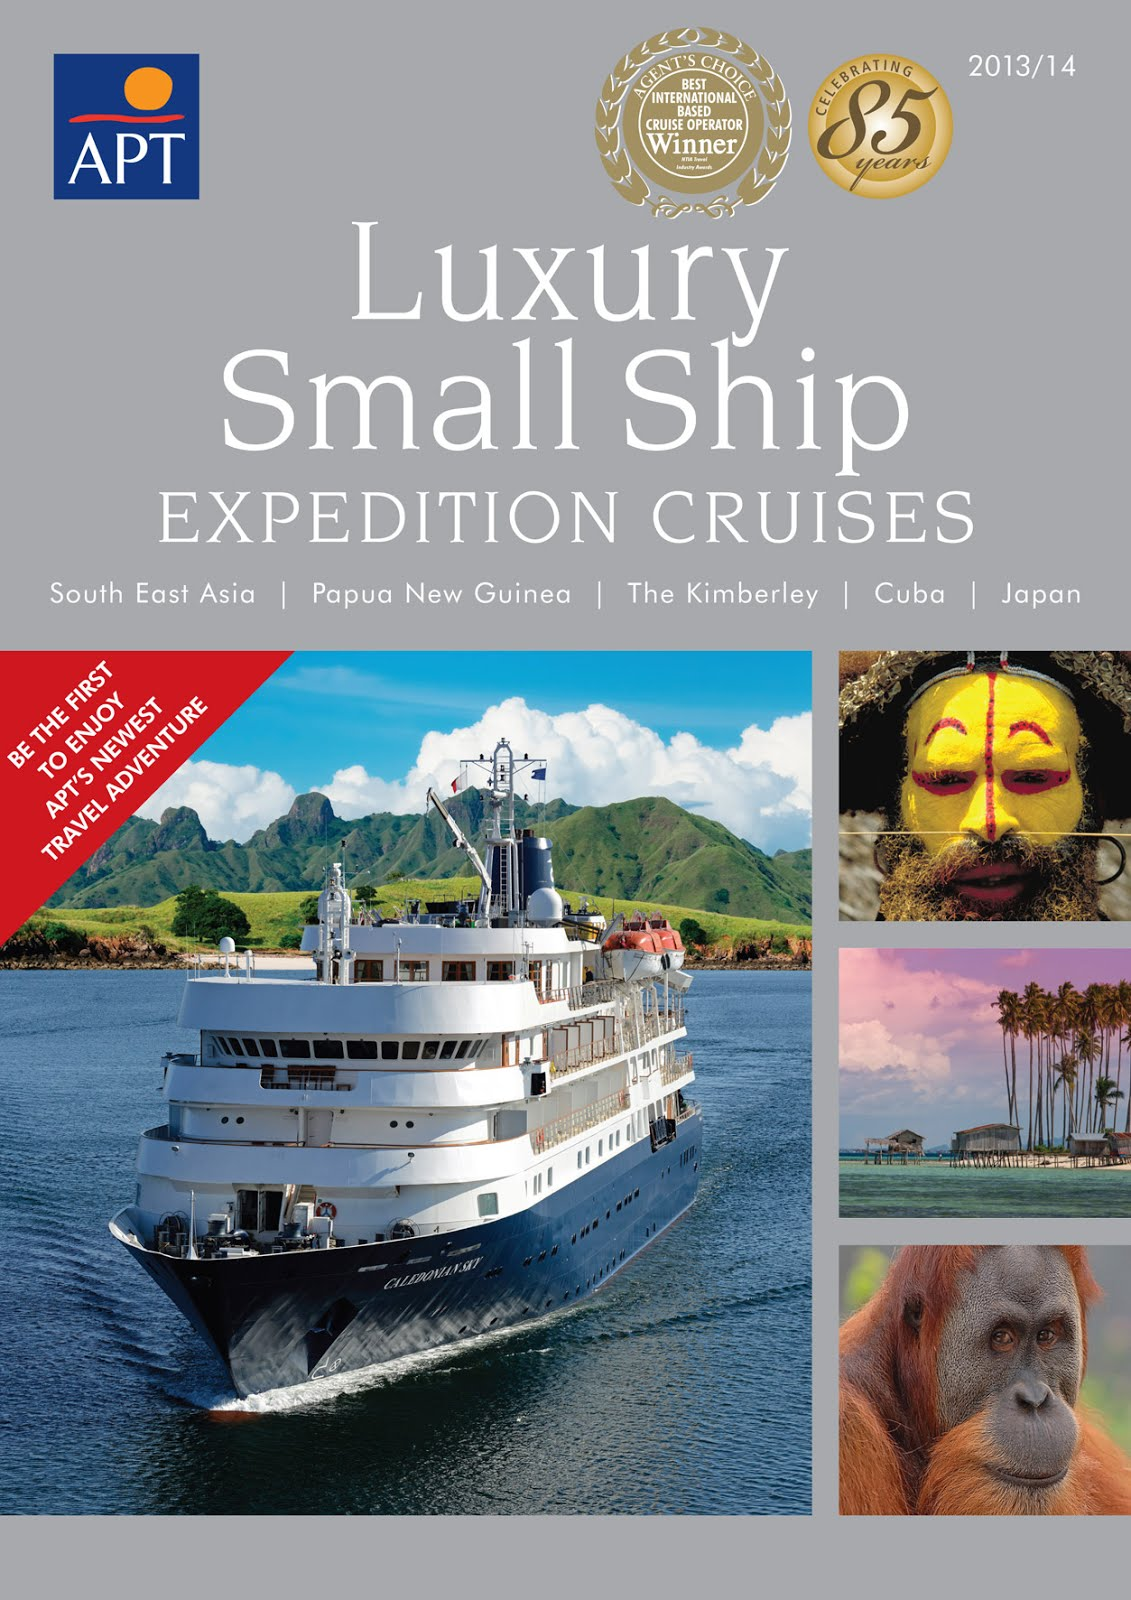 Apt cruises into luxury small ship expeditions for Luxury small cruise lines